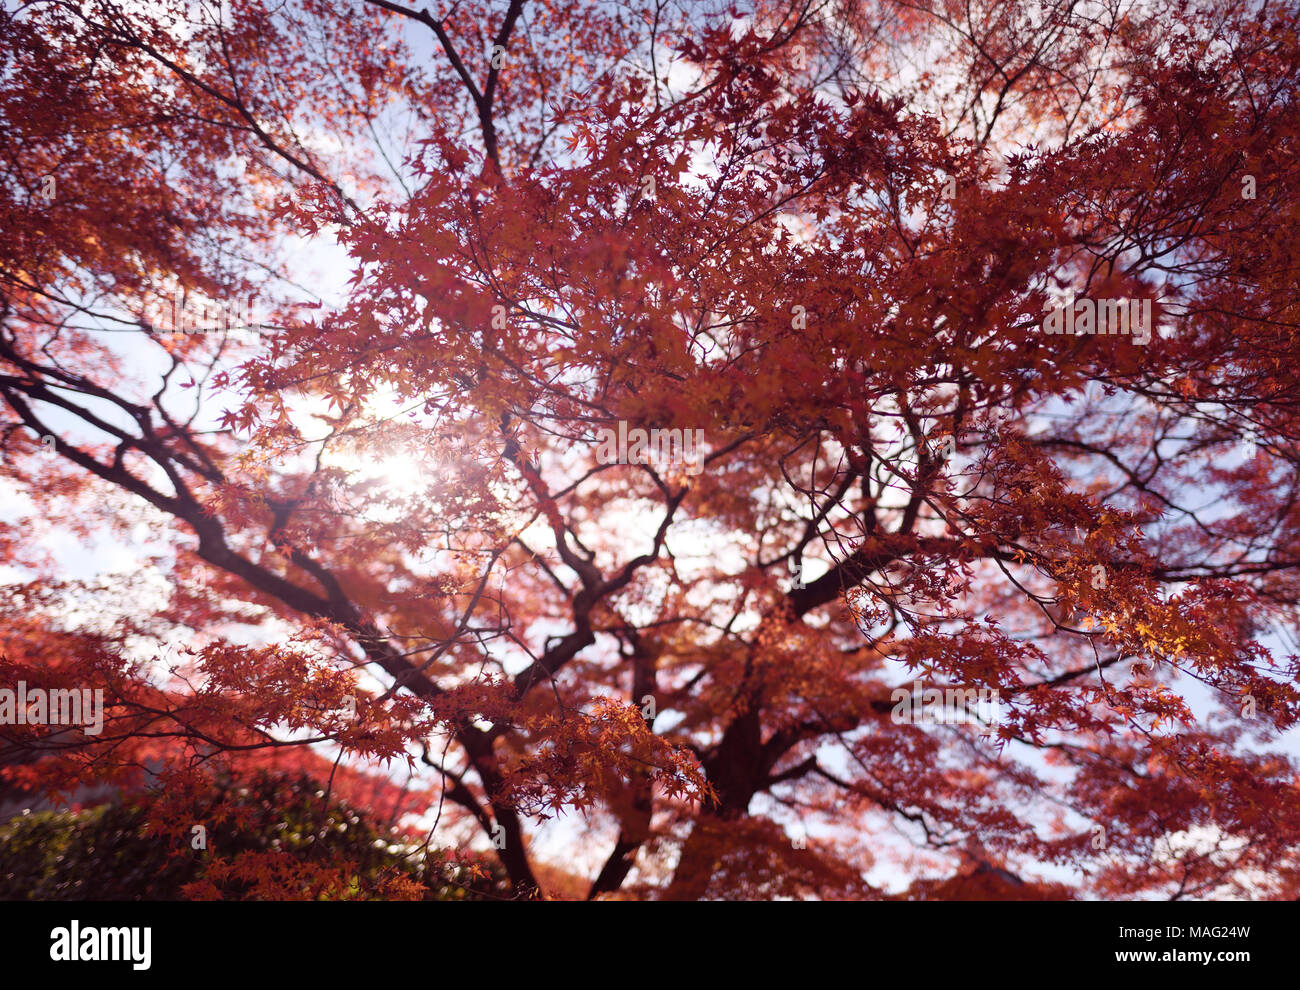 Sunlight shining through red leaves of a beautiful Japanese maple, Acer palmatum, in autumn scenery in Kyoto, Japan Stock Photo